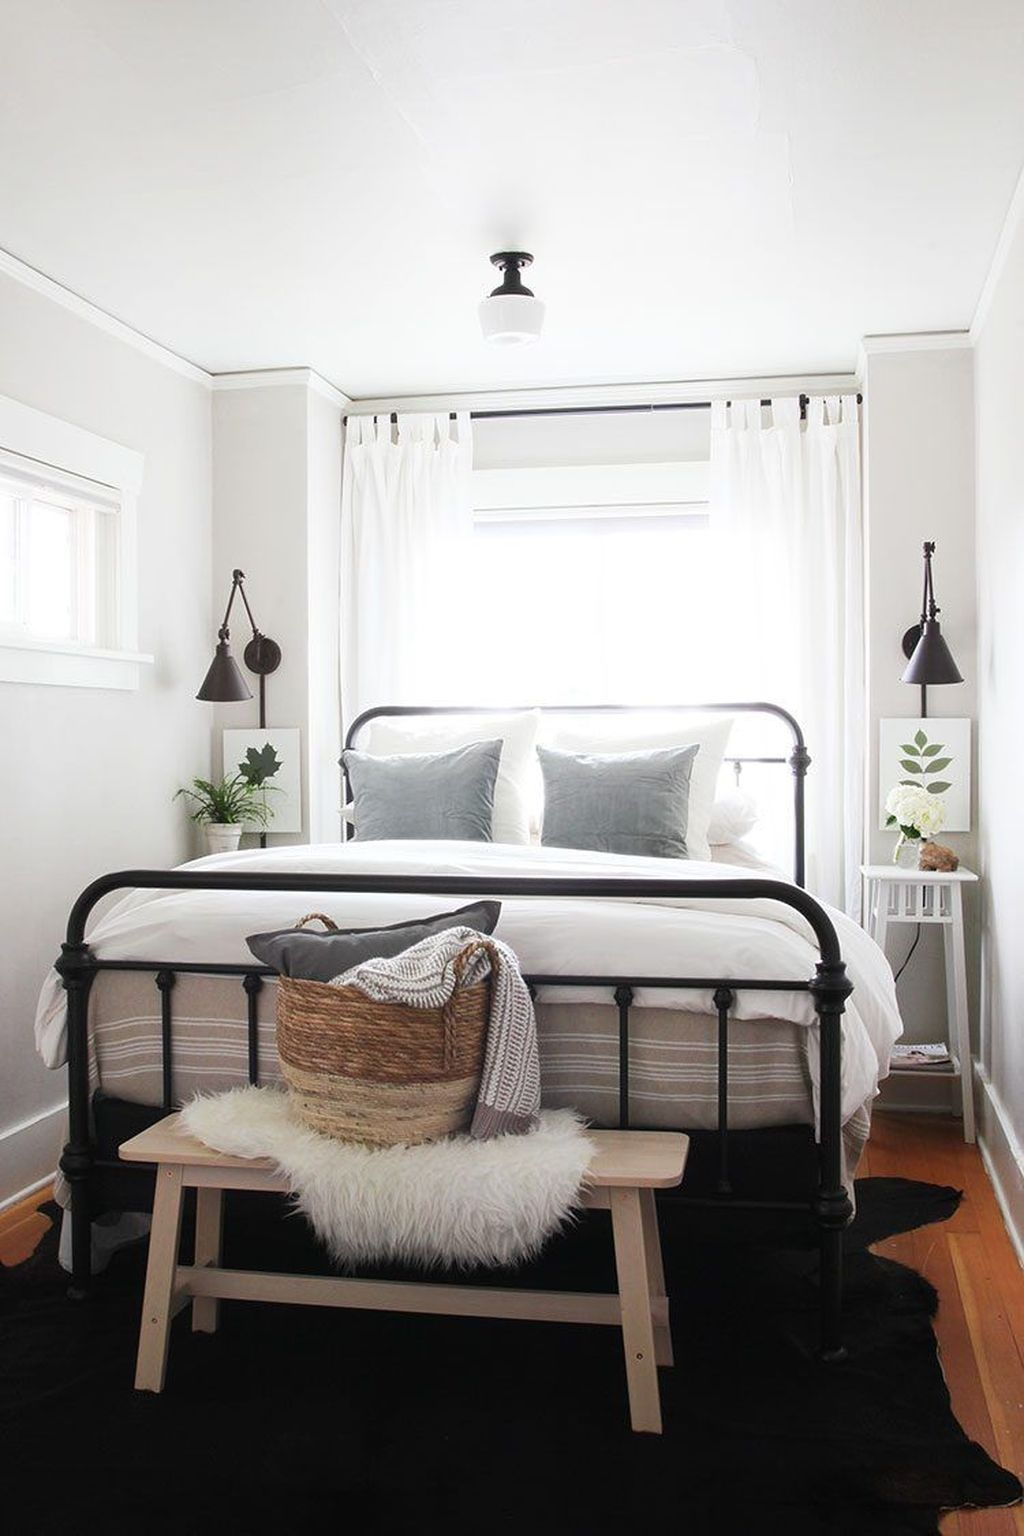 20+ Minimalist Bedroom Decorating Ideas For Small Spaces - COODECOR